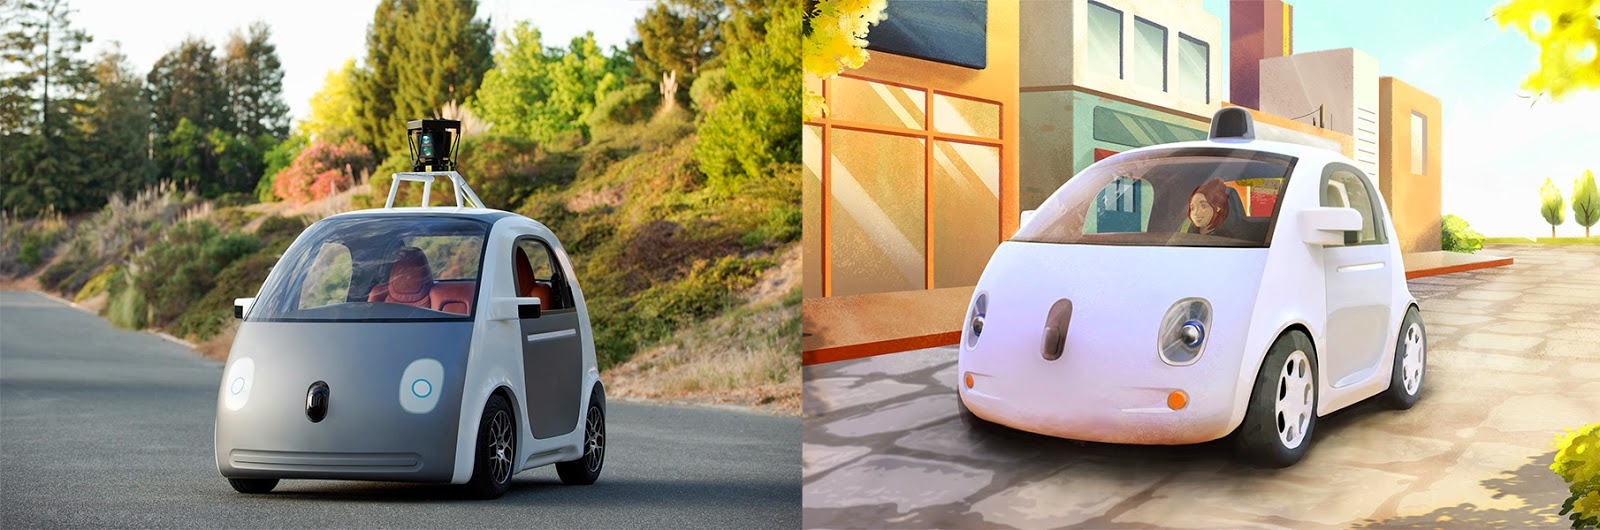 Self-Driving-Google-Vehicle Prototype Image Banner Cropped 600px